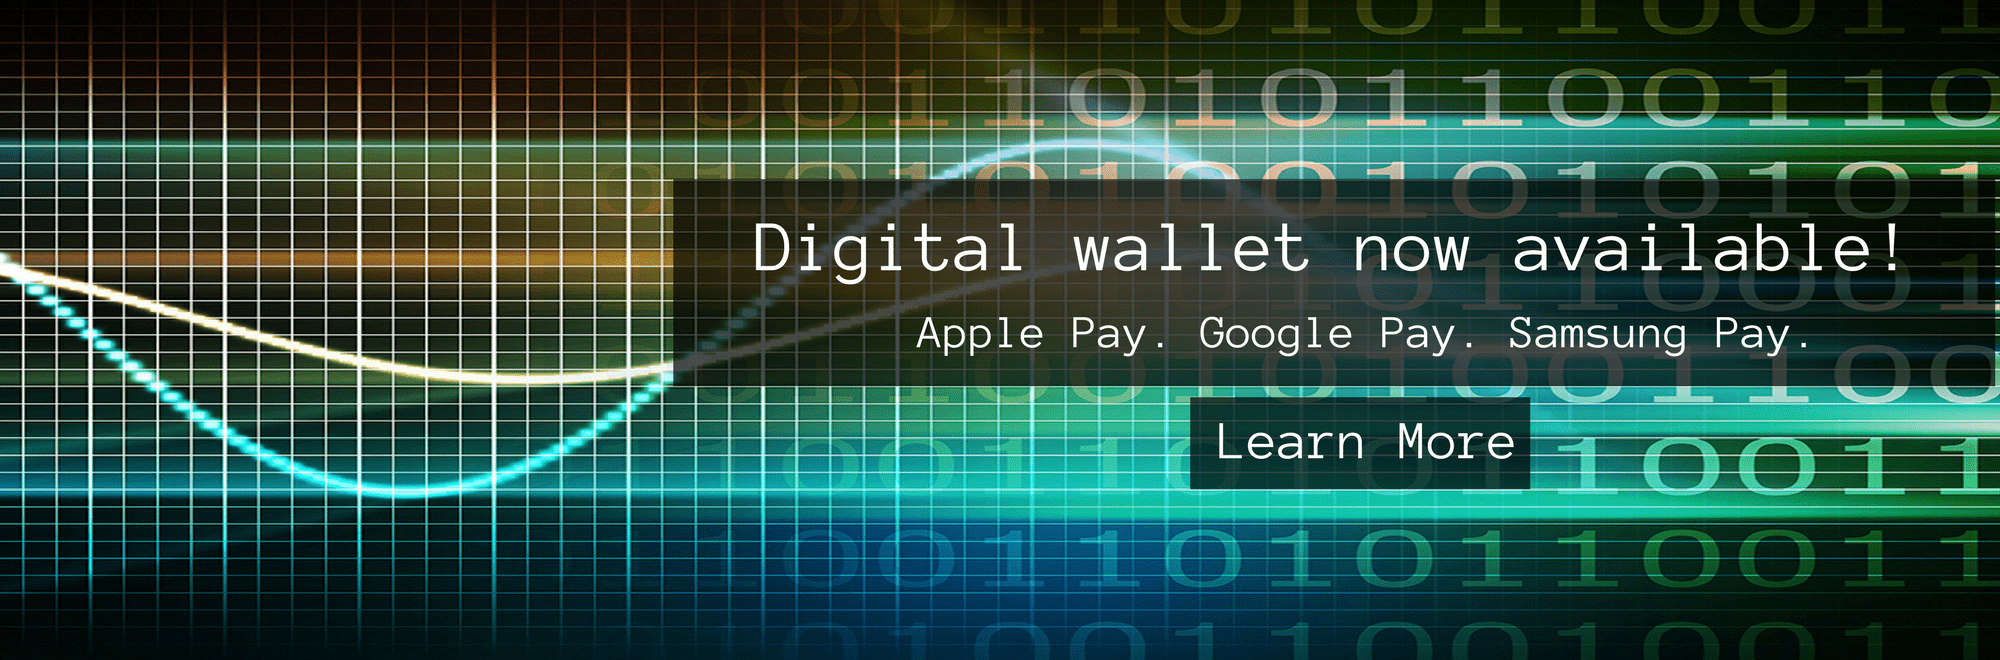 Digital Wallet Now Available